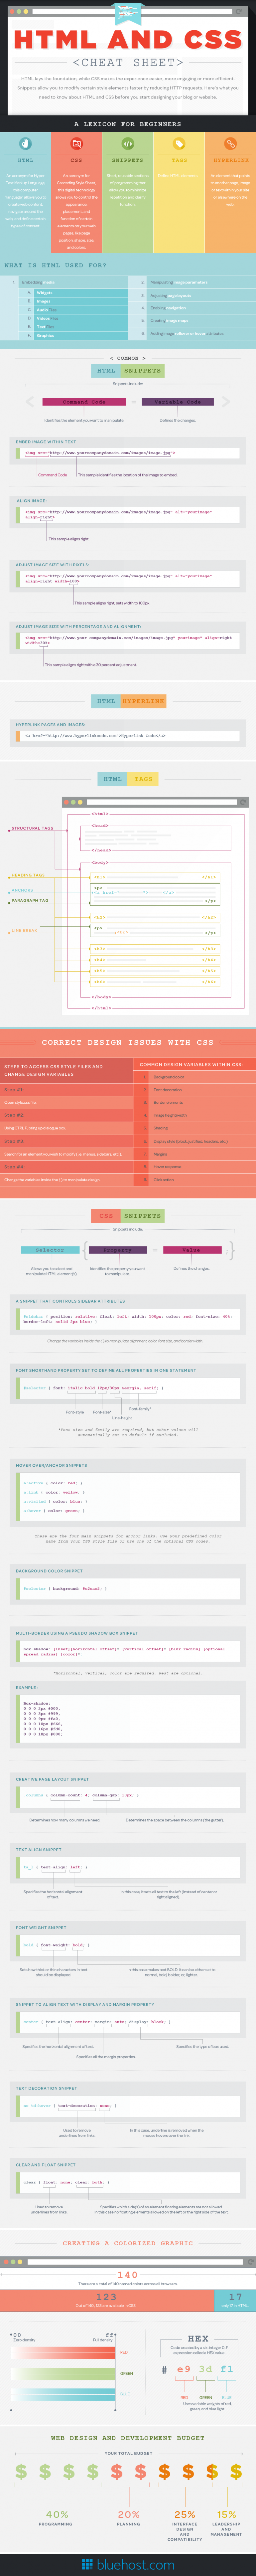 HTML and CSS Cheat Sheet (Infographic)